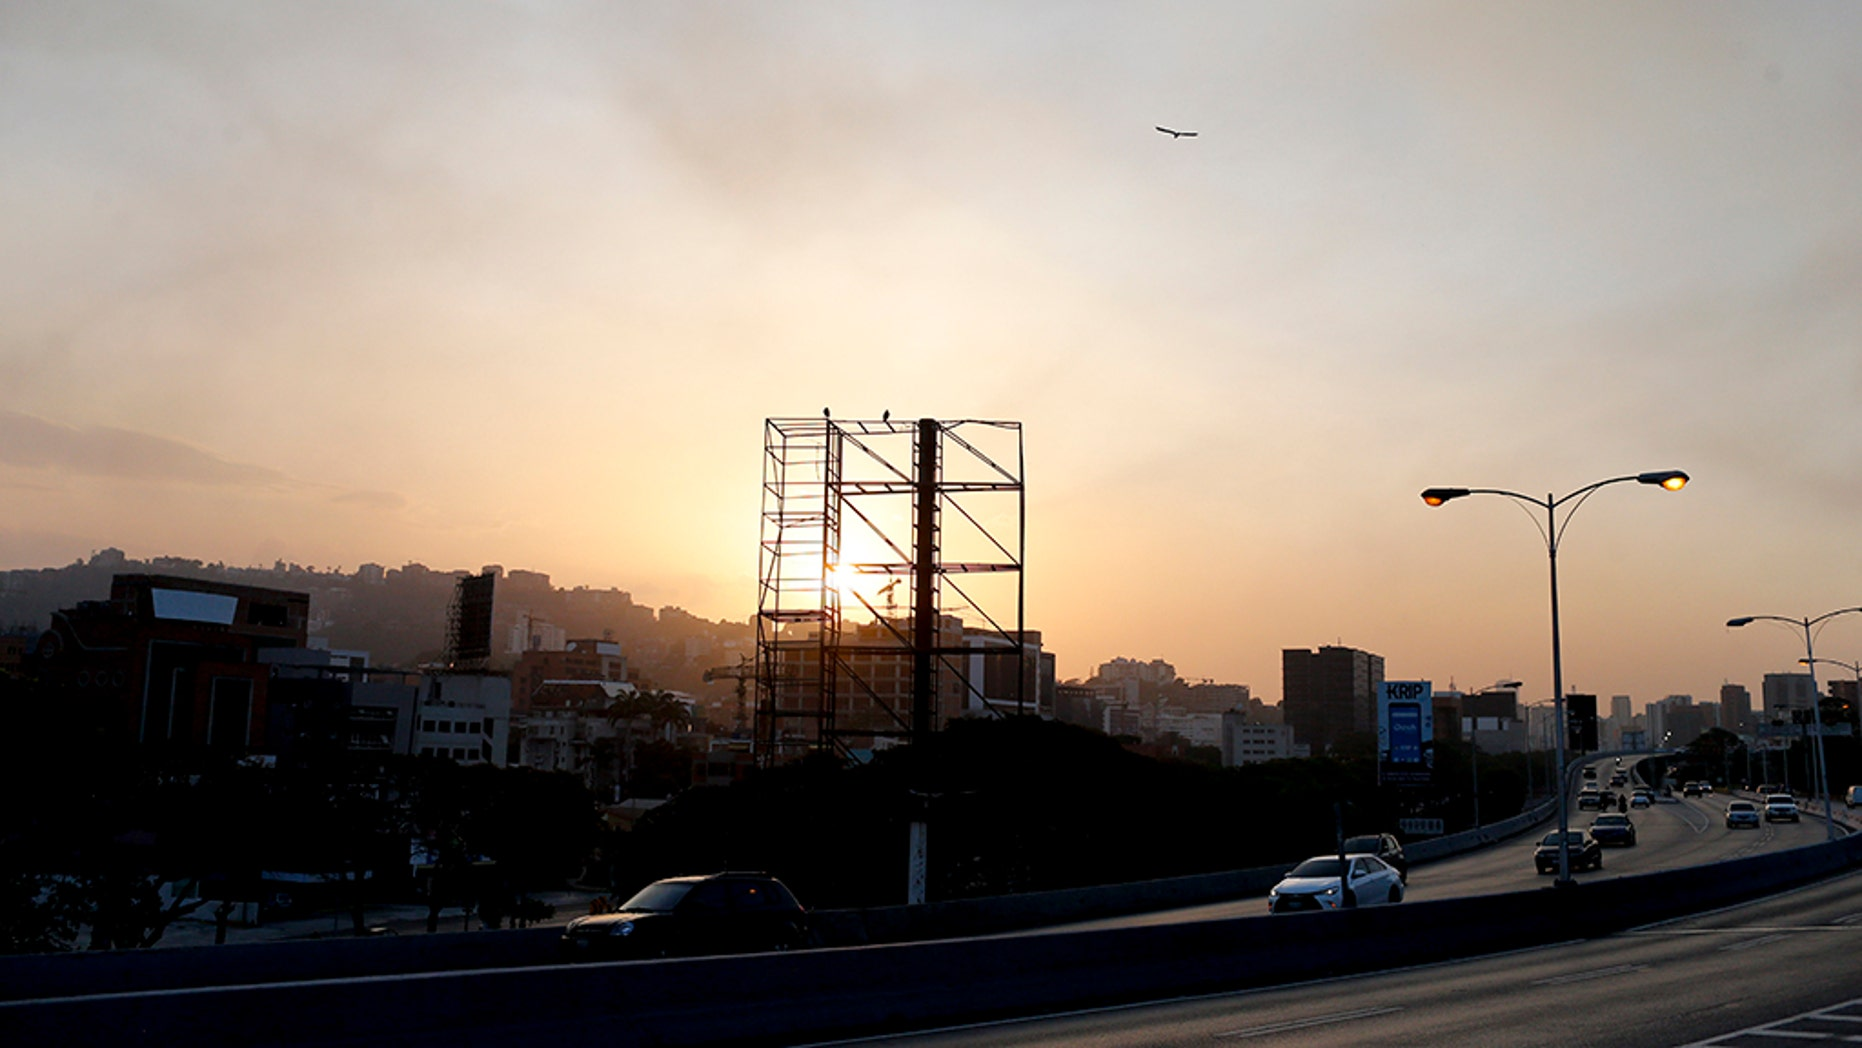 "A billboard stands empty above a highway without traffic, as the sun goes down in Caracas, Venezuela, on Monday, March 1<div class=""e3lan e3lan-in-post1""><script async src=""//pagead2.googlesyndication.com/pagead/js/adsbygoogle.js""></script>